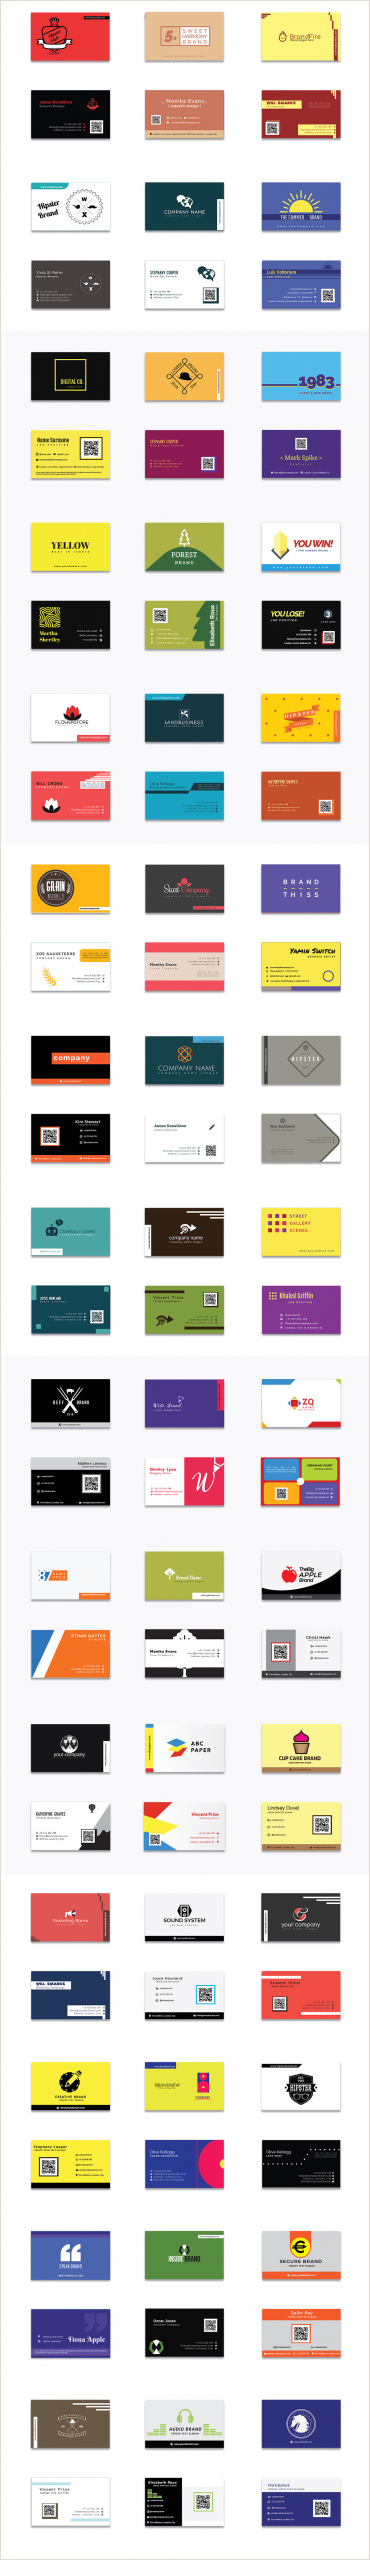 Buy Business Card Template 1000 Business Card Templates Pack Designshock Shockfamily